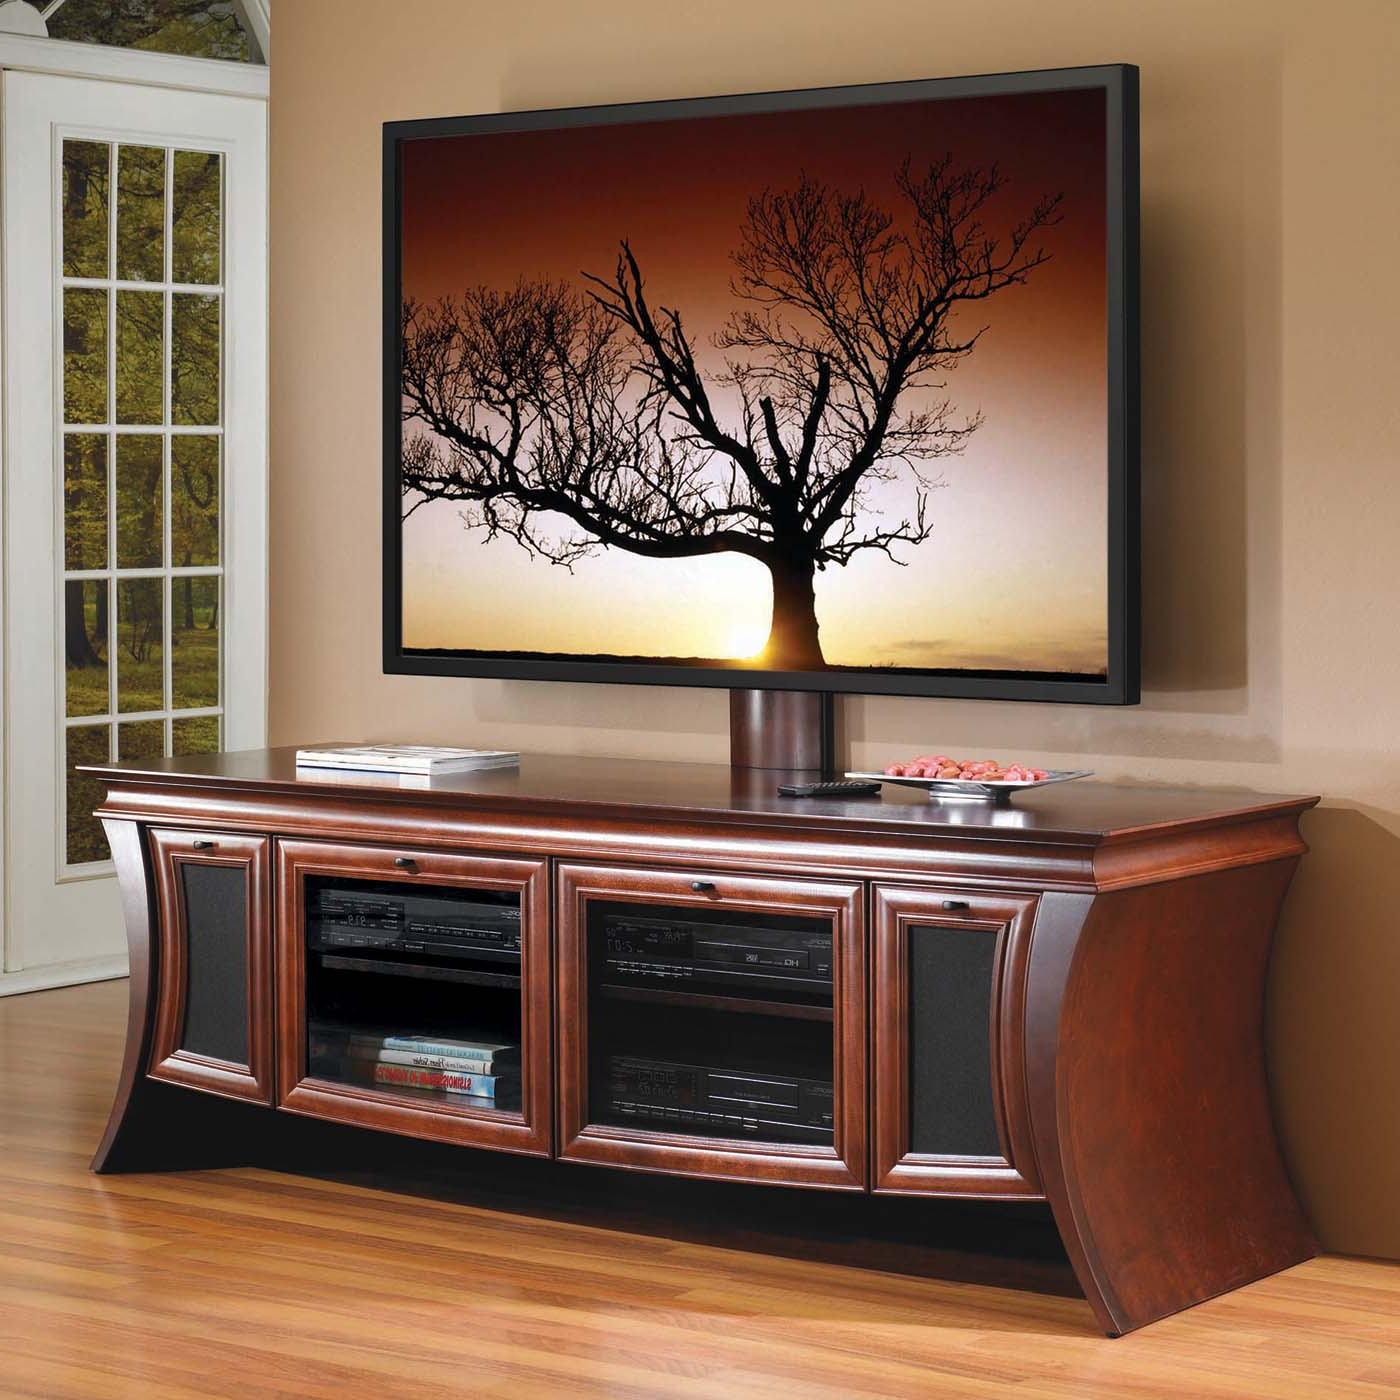 Latest Amish Tv Stand Ohio Solid Wood Media Console Corner Entertainment Regarding Light Oak Tv Stands Flat Screen (View 7 of 20)